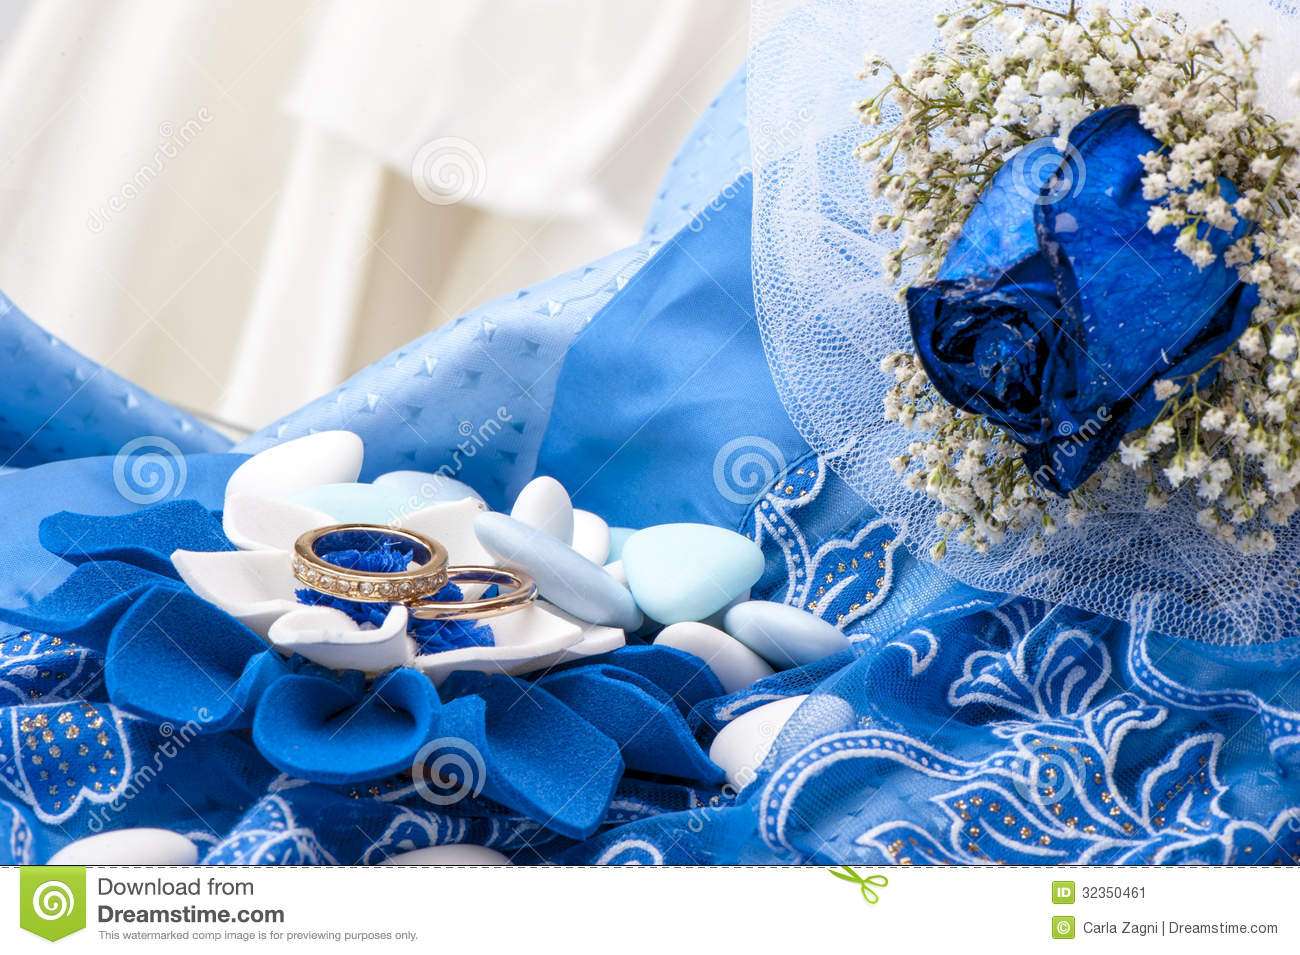 lily ring engagement wedding kamper rings blue and white